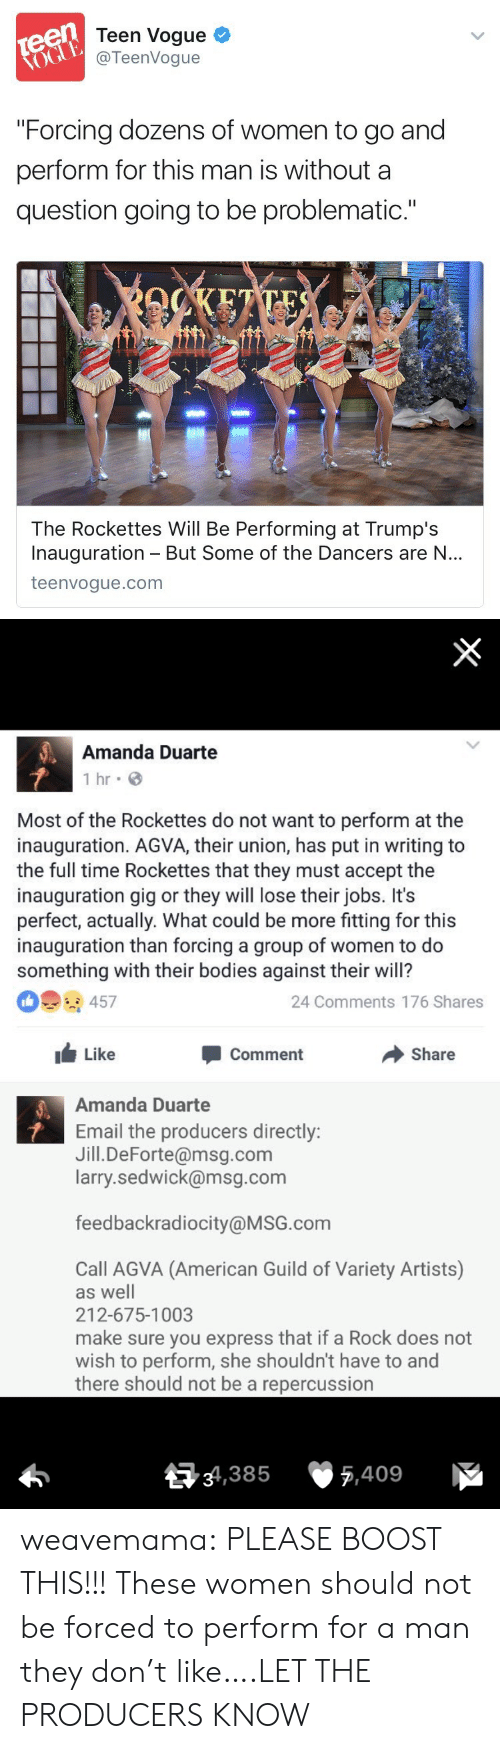 """Teen Vogue: Teen Vogue  @TeenVogue  """"Forcing dozens of women to go and  perform for this man is without a  question going to be problematic.""""  The Rockettes Will Be Performing at Trump's  Inauguration But Some of the Dancers are N...  teenvogue.com   Amanda Duarte  1 hr G  Most of the Rockettes do not want to perform at the  inauguration. AGVA, their union, has put in writing to  the full time Rockettes that they must accept the  inauguration gig or they will lose their jobs. It's  perfect, actually. What could be more fitting for this  inauguration than forcing a group of women to do  something with their bodies against their will?  24 Comments 176 Shares  Like  Comment  Share  Amanda Duarte  Email the producers directly:  Jill.DeForte@msg.com  larry.sedwick@msg.com  feedbackradiocity@MSG.com  Call AGVA (American Guild of Variety Artists)  as well  212-675-1003  make sure you express that if a Rock does not  wish to perform, she shouldn't have to and  there should not be a repercussion  34,385  5,409 weavemama: PLEASE BOOST THIS!!!   These women should not be forced to perform for a man they don't like….LET THE PRODUCERS KNOW"""